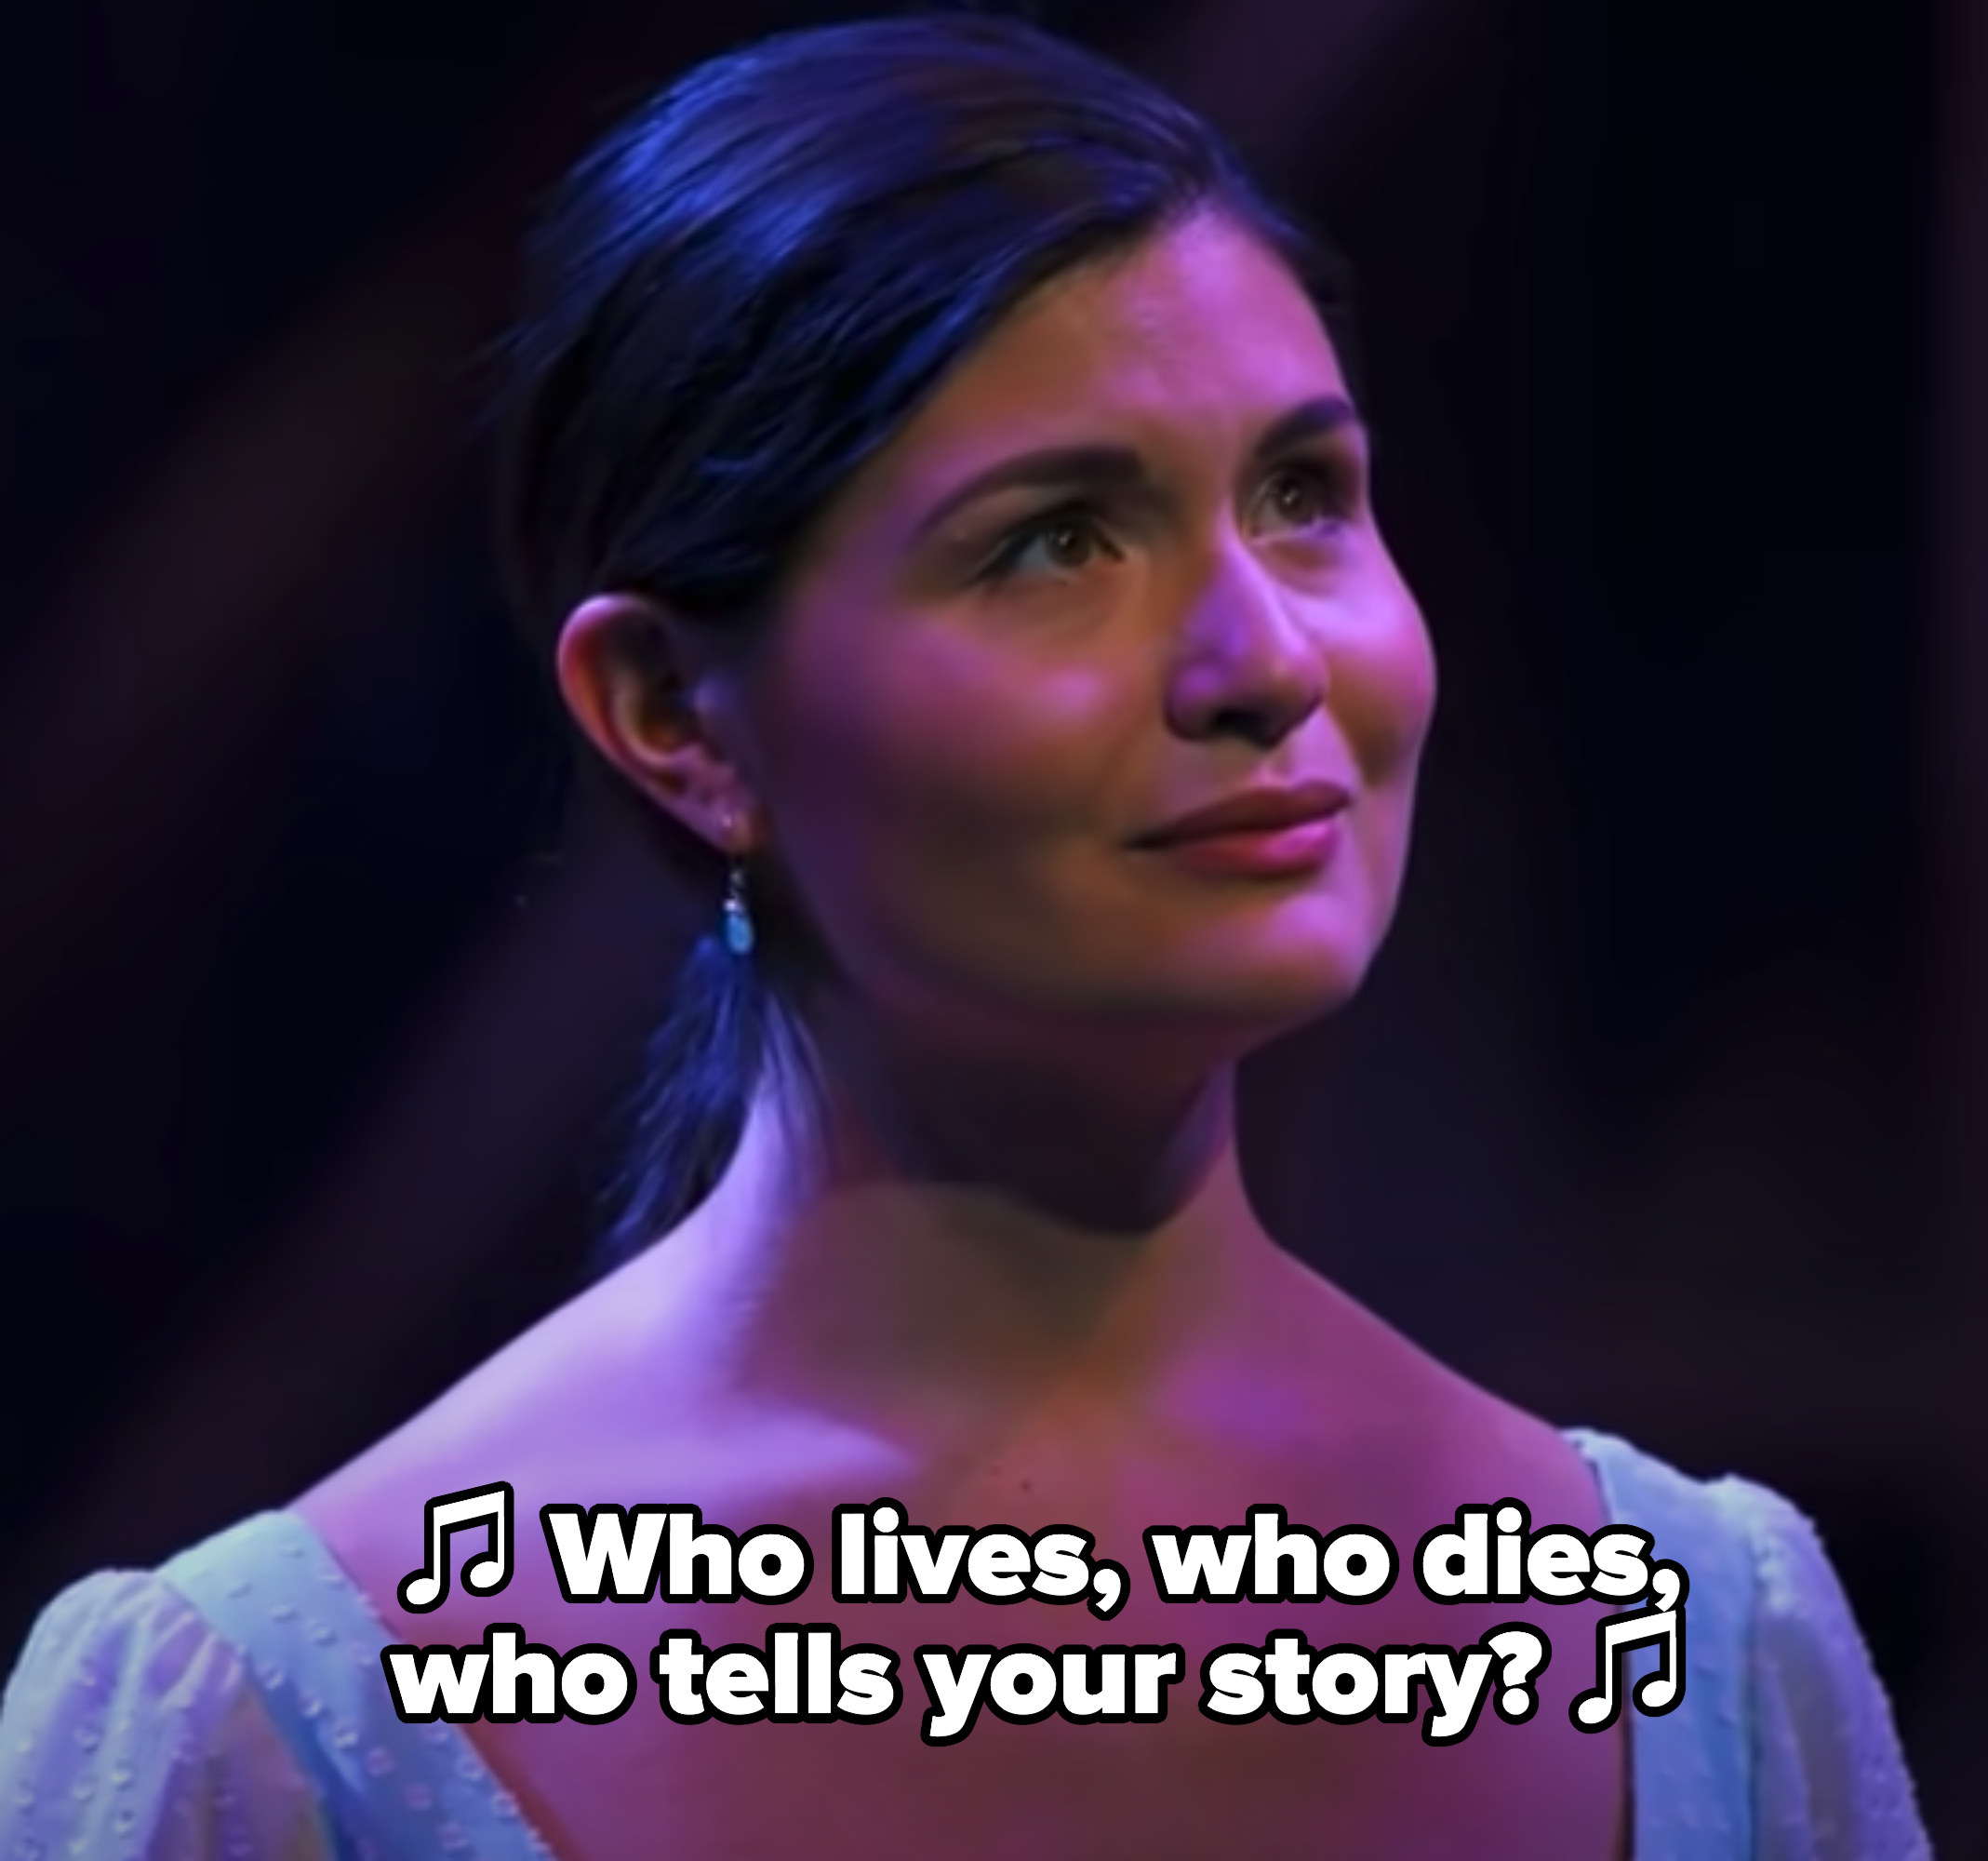 """Phillipa Soo in """"Hamilton"""" with actors singing """"Who lives, who dies, who tells your story?"""" in the background"""